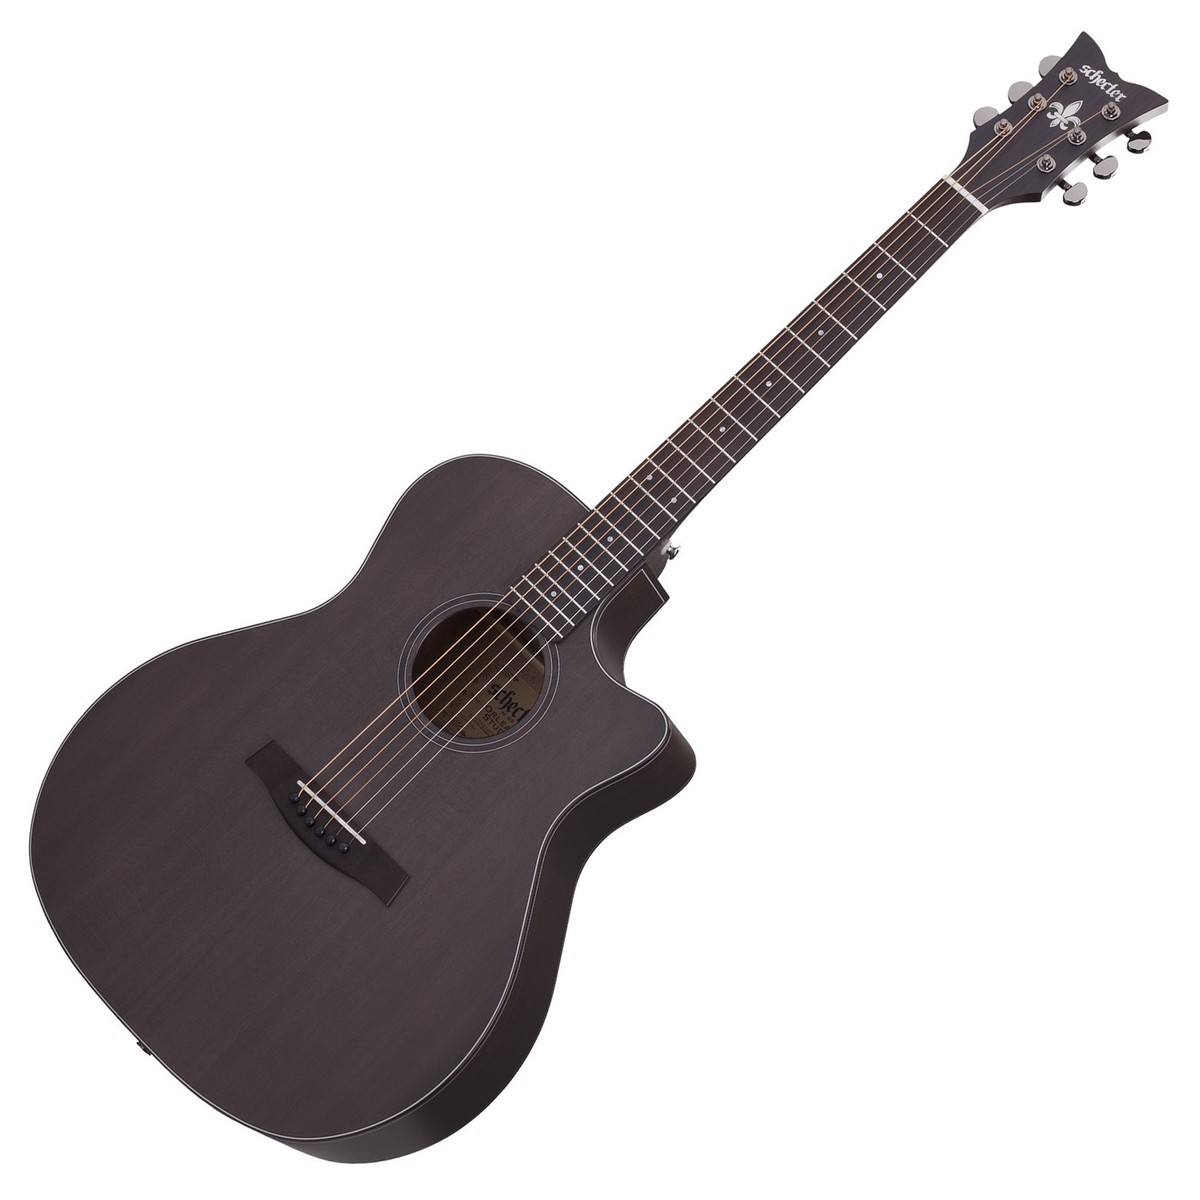 schecter orleans studio acoustic guitar satin see thru black at gear4music. Black Bedroom Furniture Sets. Home Design Ideas